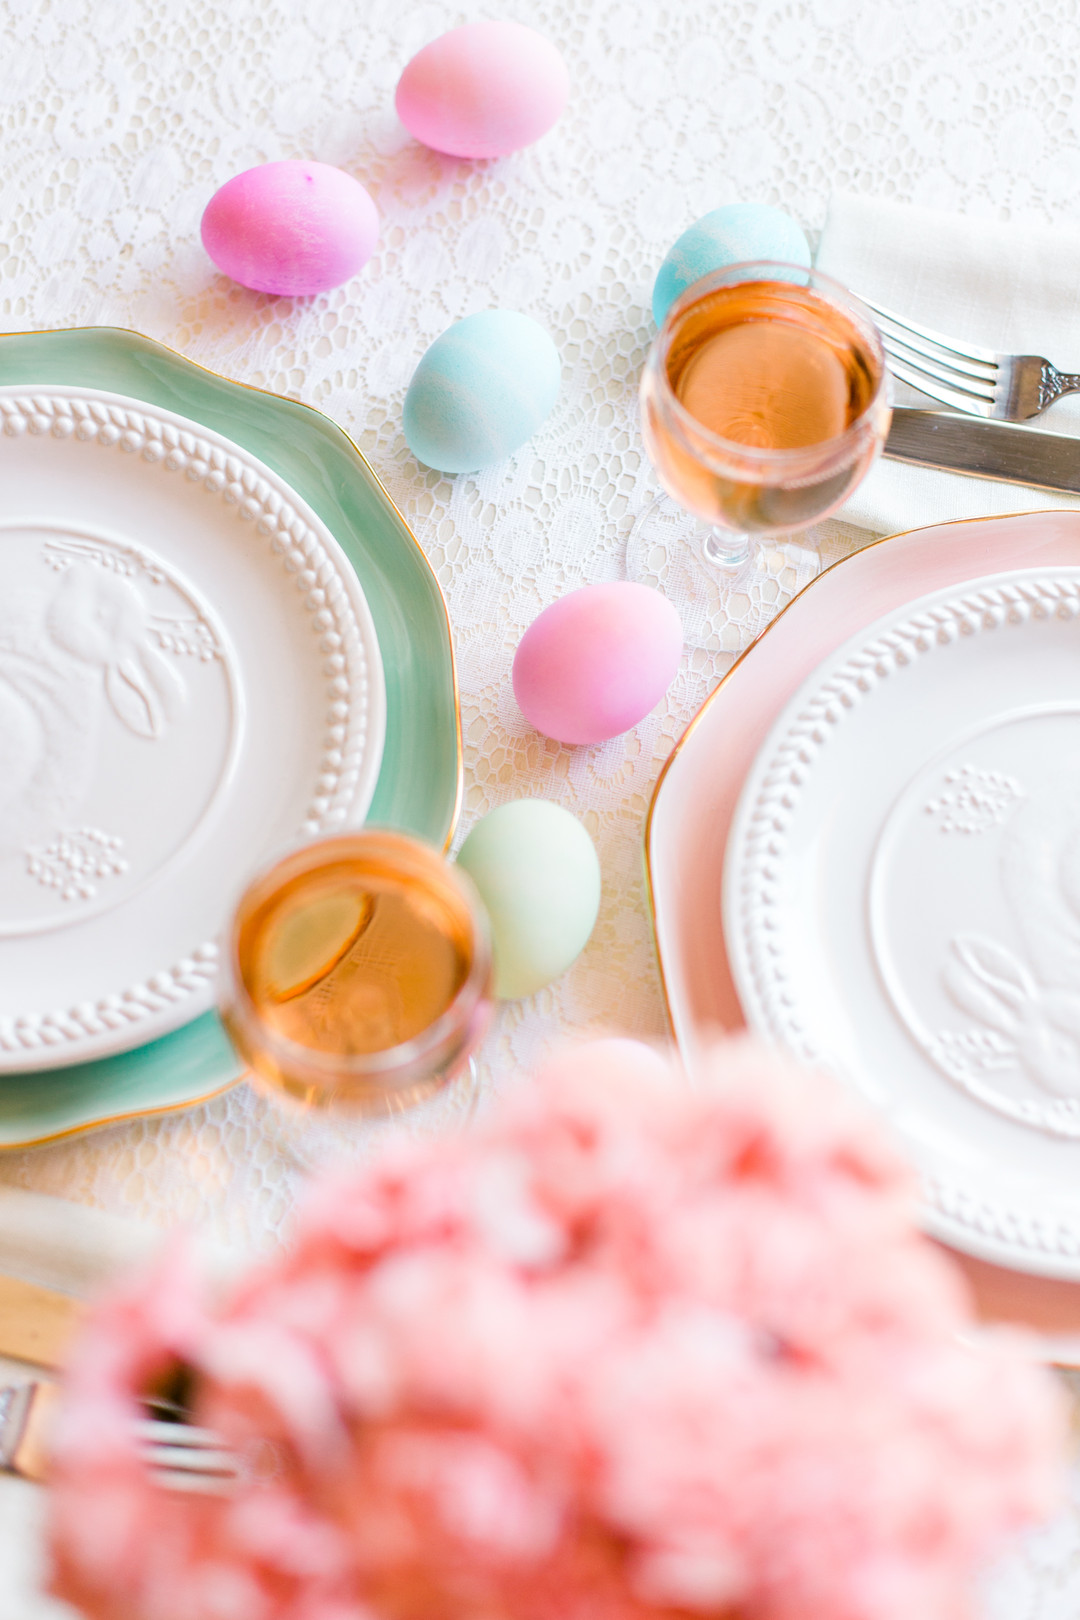 Staal_KristinaStaalPhotography_KristinaStaalPhotographyEasterTablescape201622_big Easy Entertaining: Easter Brunch Inspiration for Two